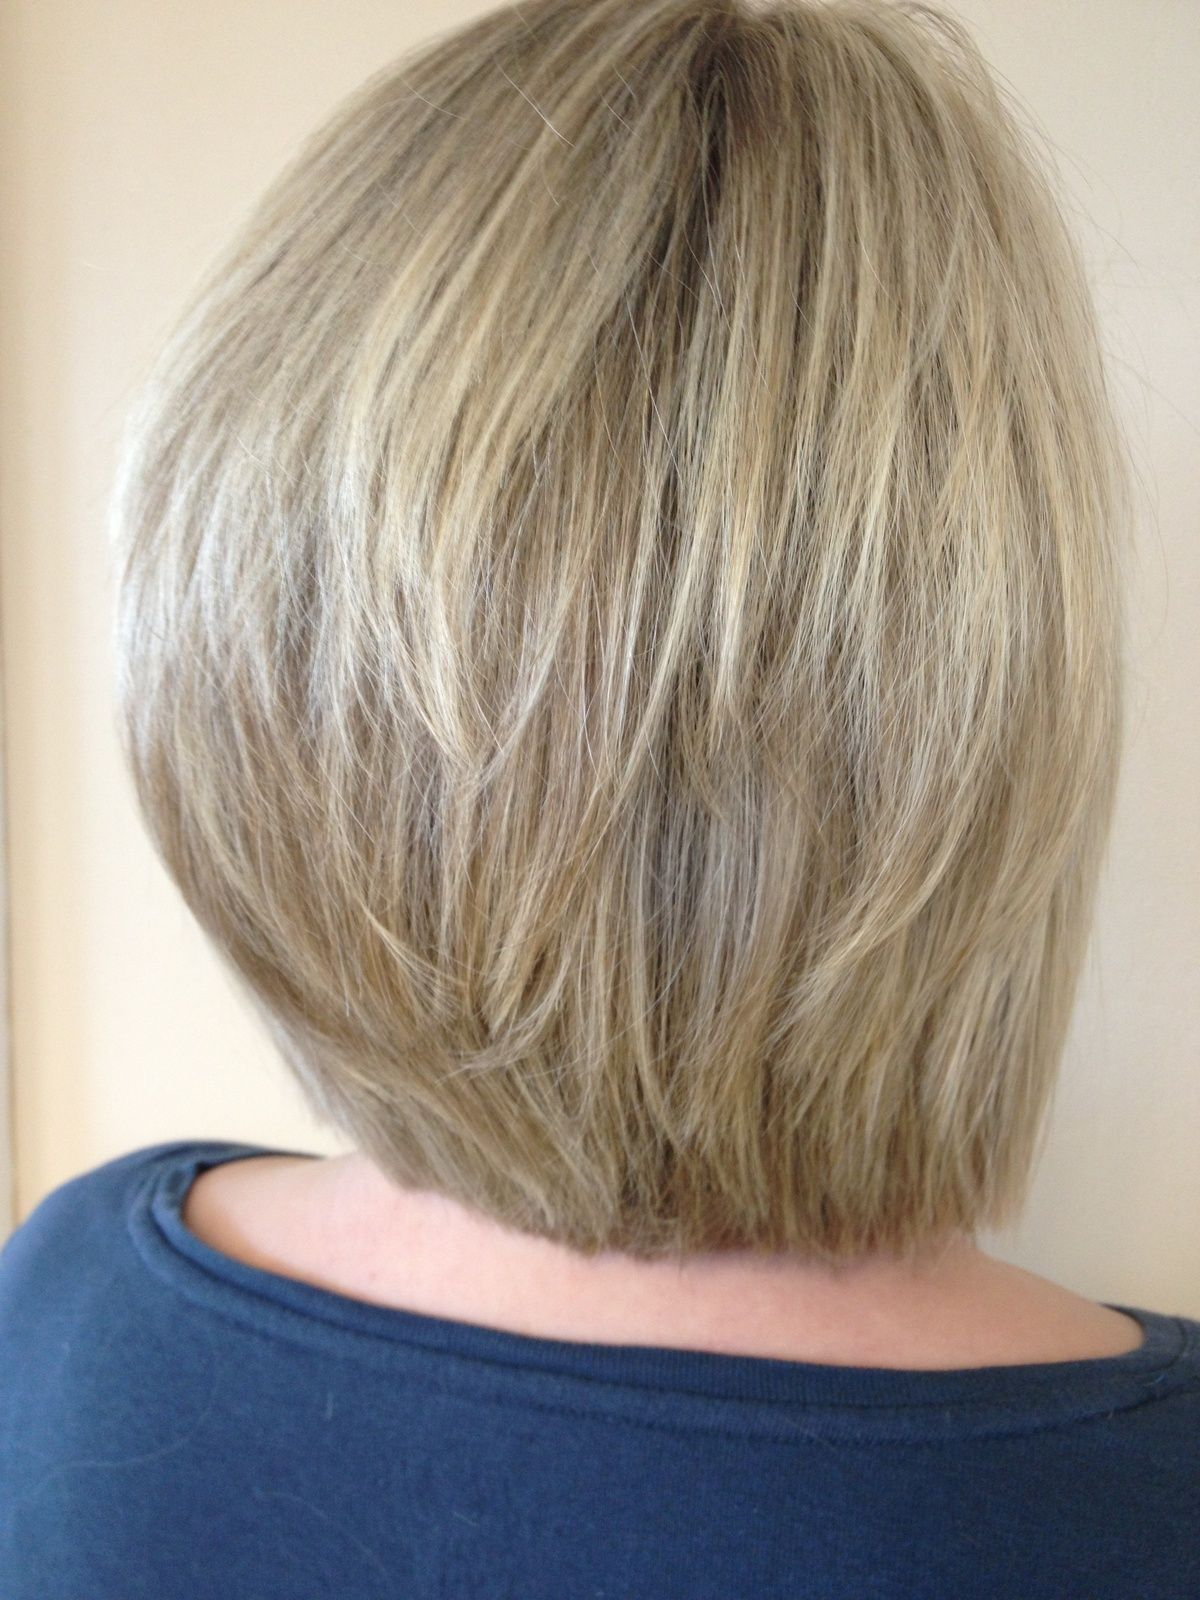 how to style short neck length hair